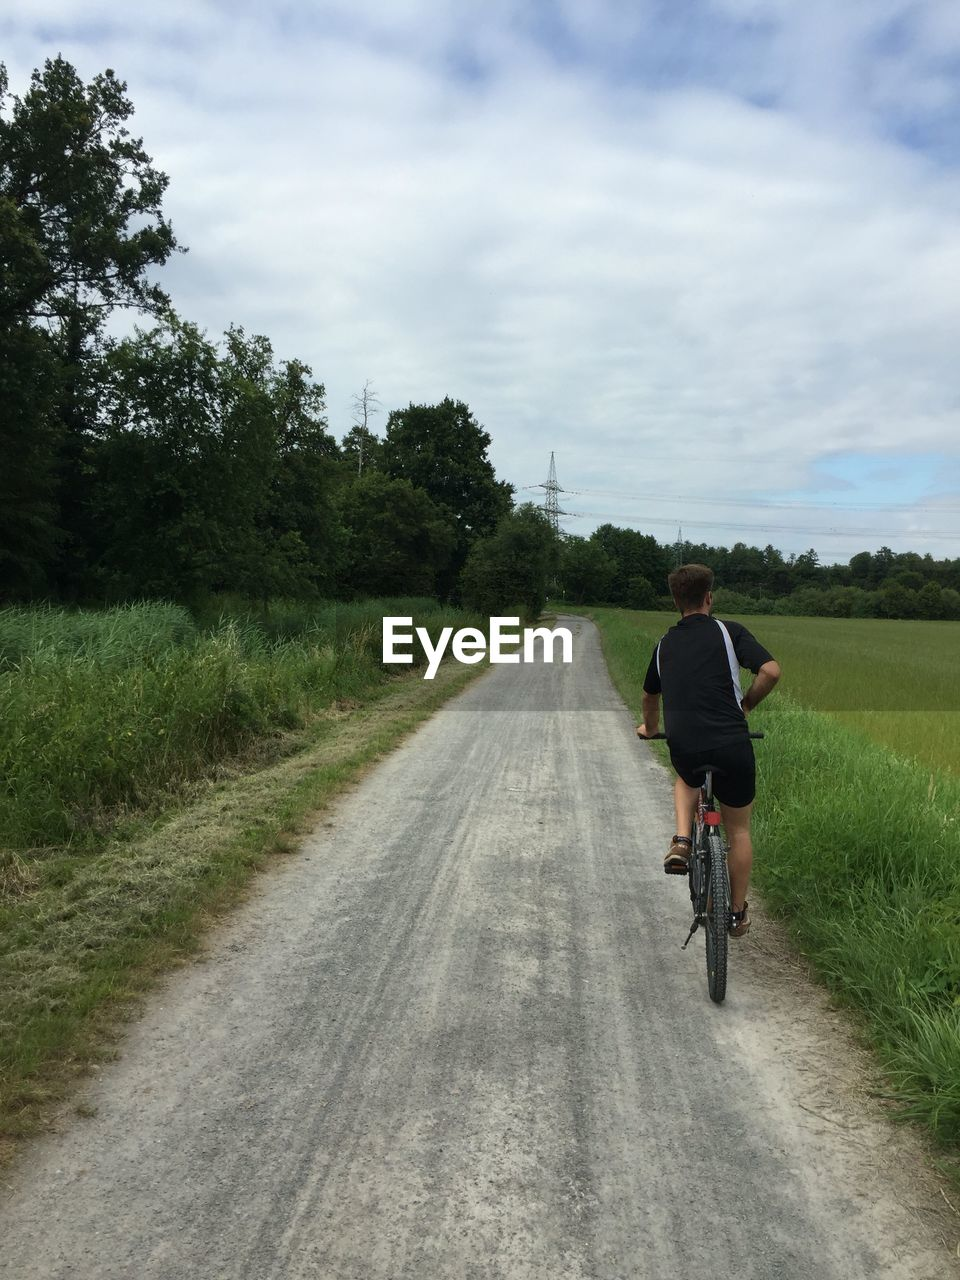 Rear View Of Man Riding Bicycle On Road Against Cloudy Sky